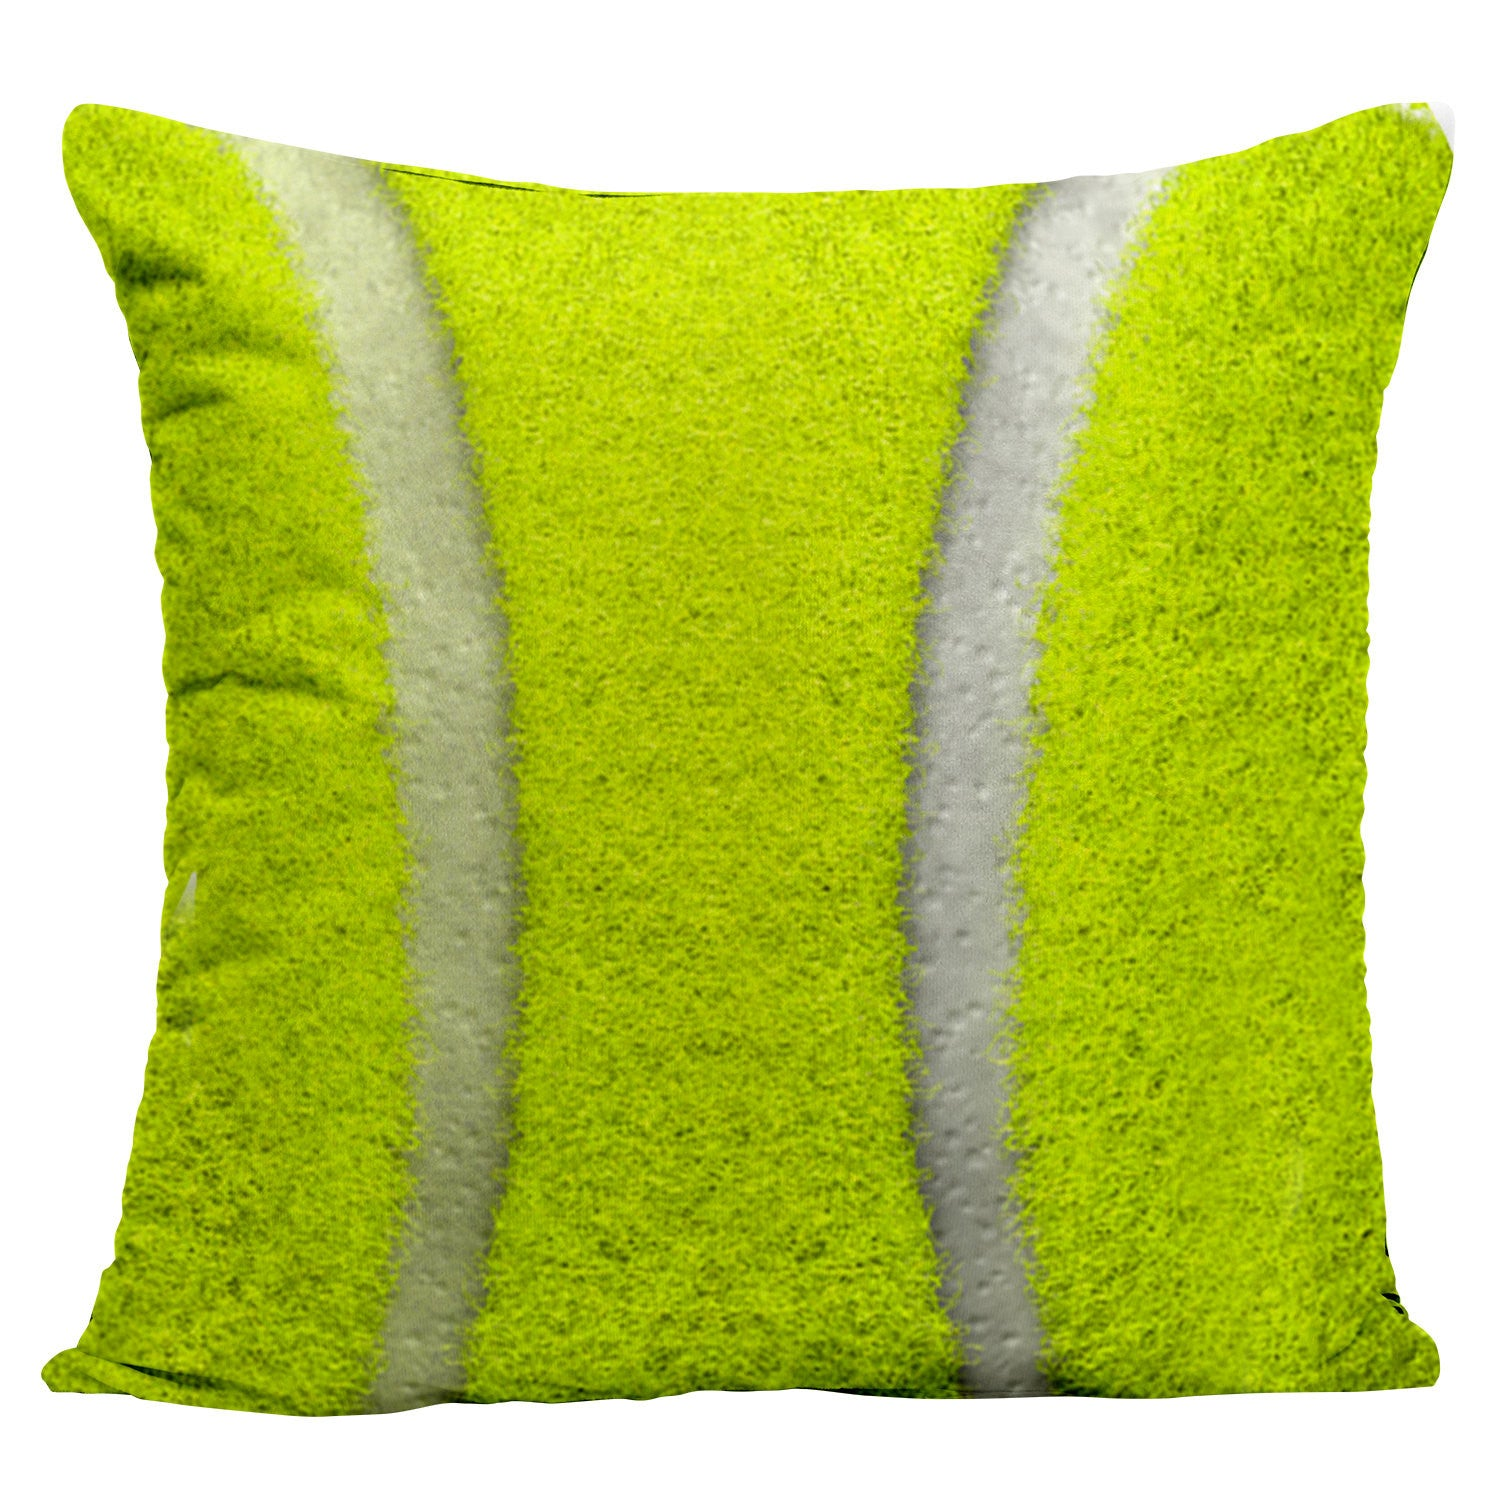 Tennis ball Pillow - Shweeet